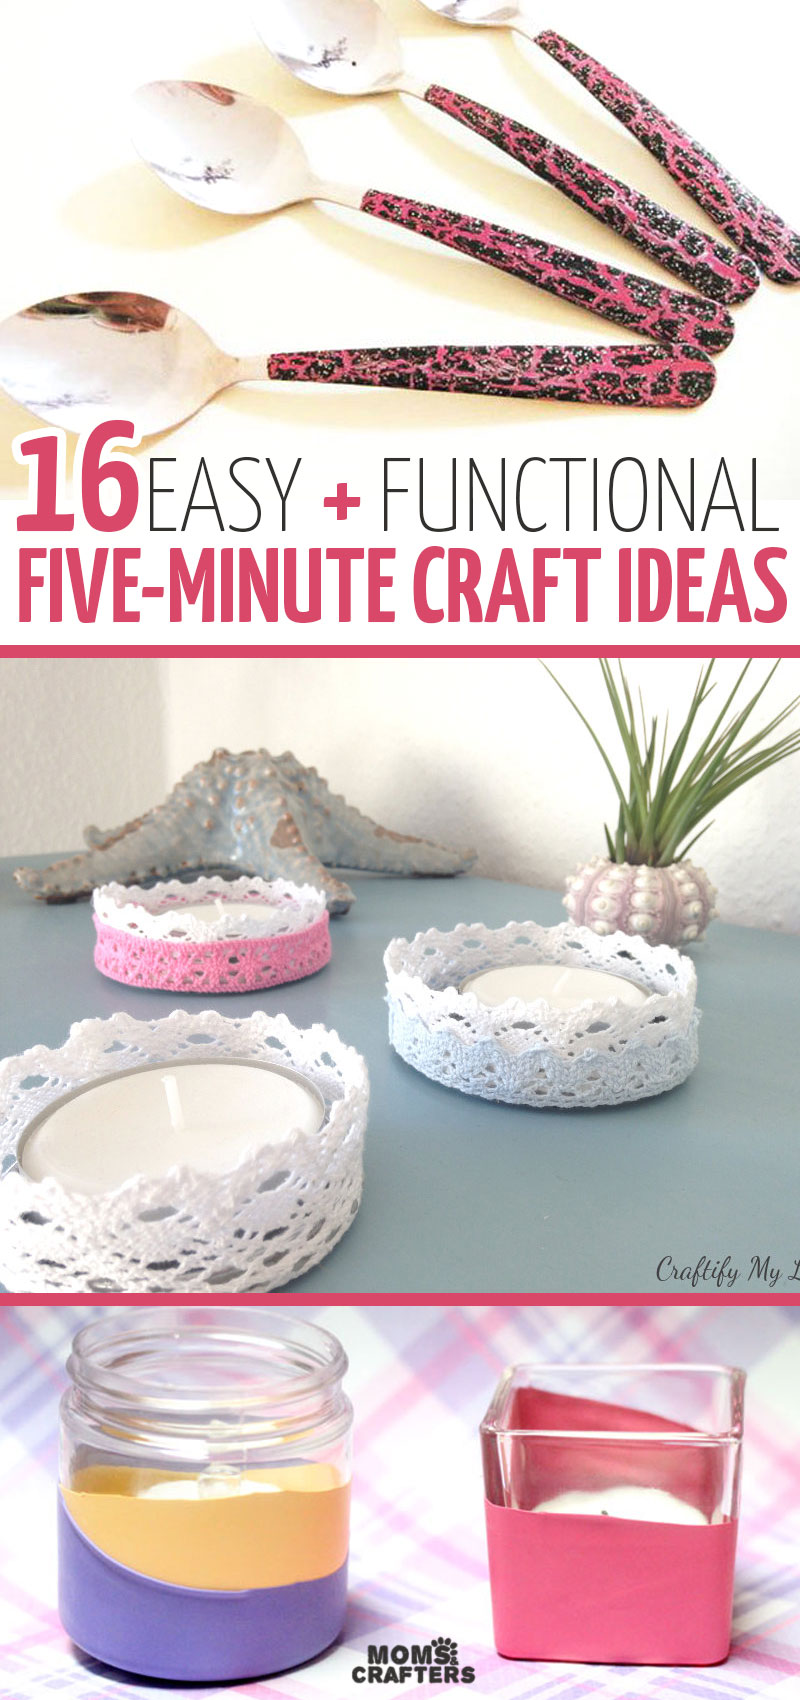 Click for the ultimate list of five minute crafts - DIY projects that you can make in 5 minutes or less! This includes home decor crafts, DIY toys, kids crafts, paper crafts, and more quick and easy craft tutorials for beginners. #crafts #diy